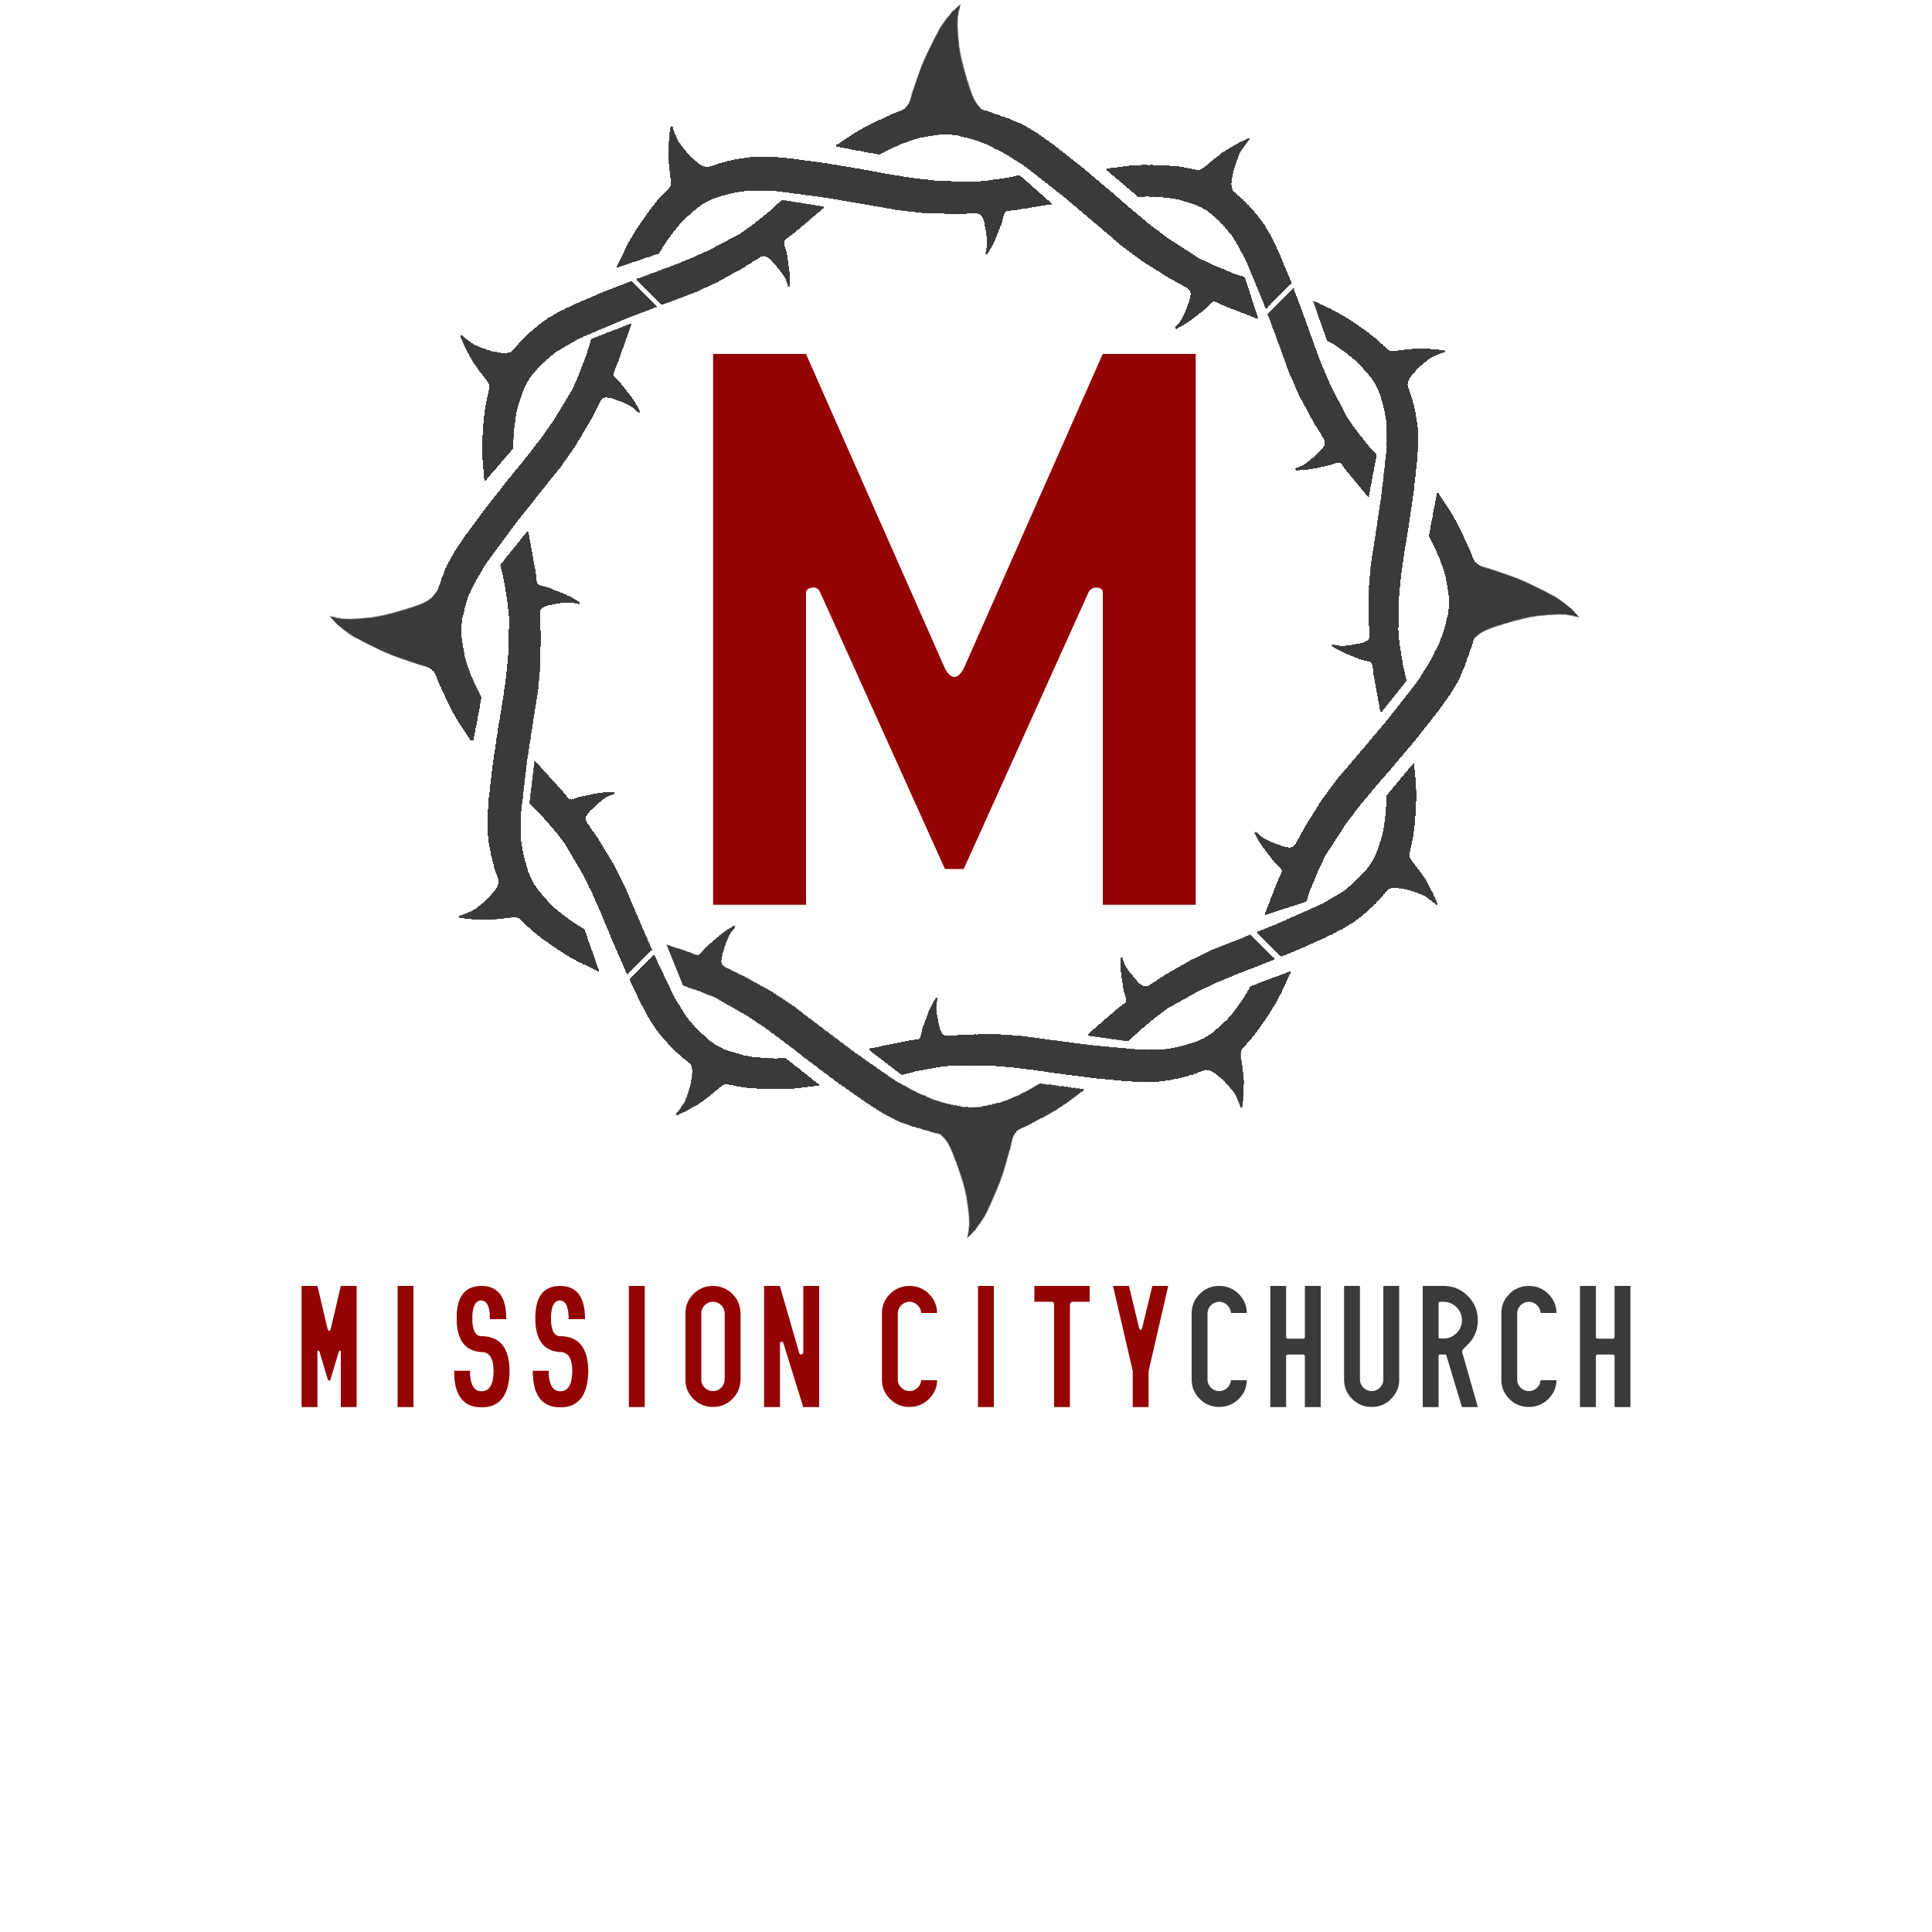 Mission City Church